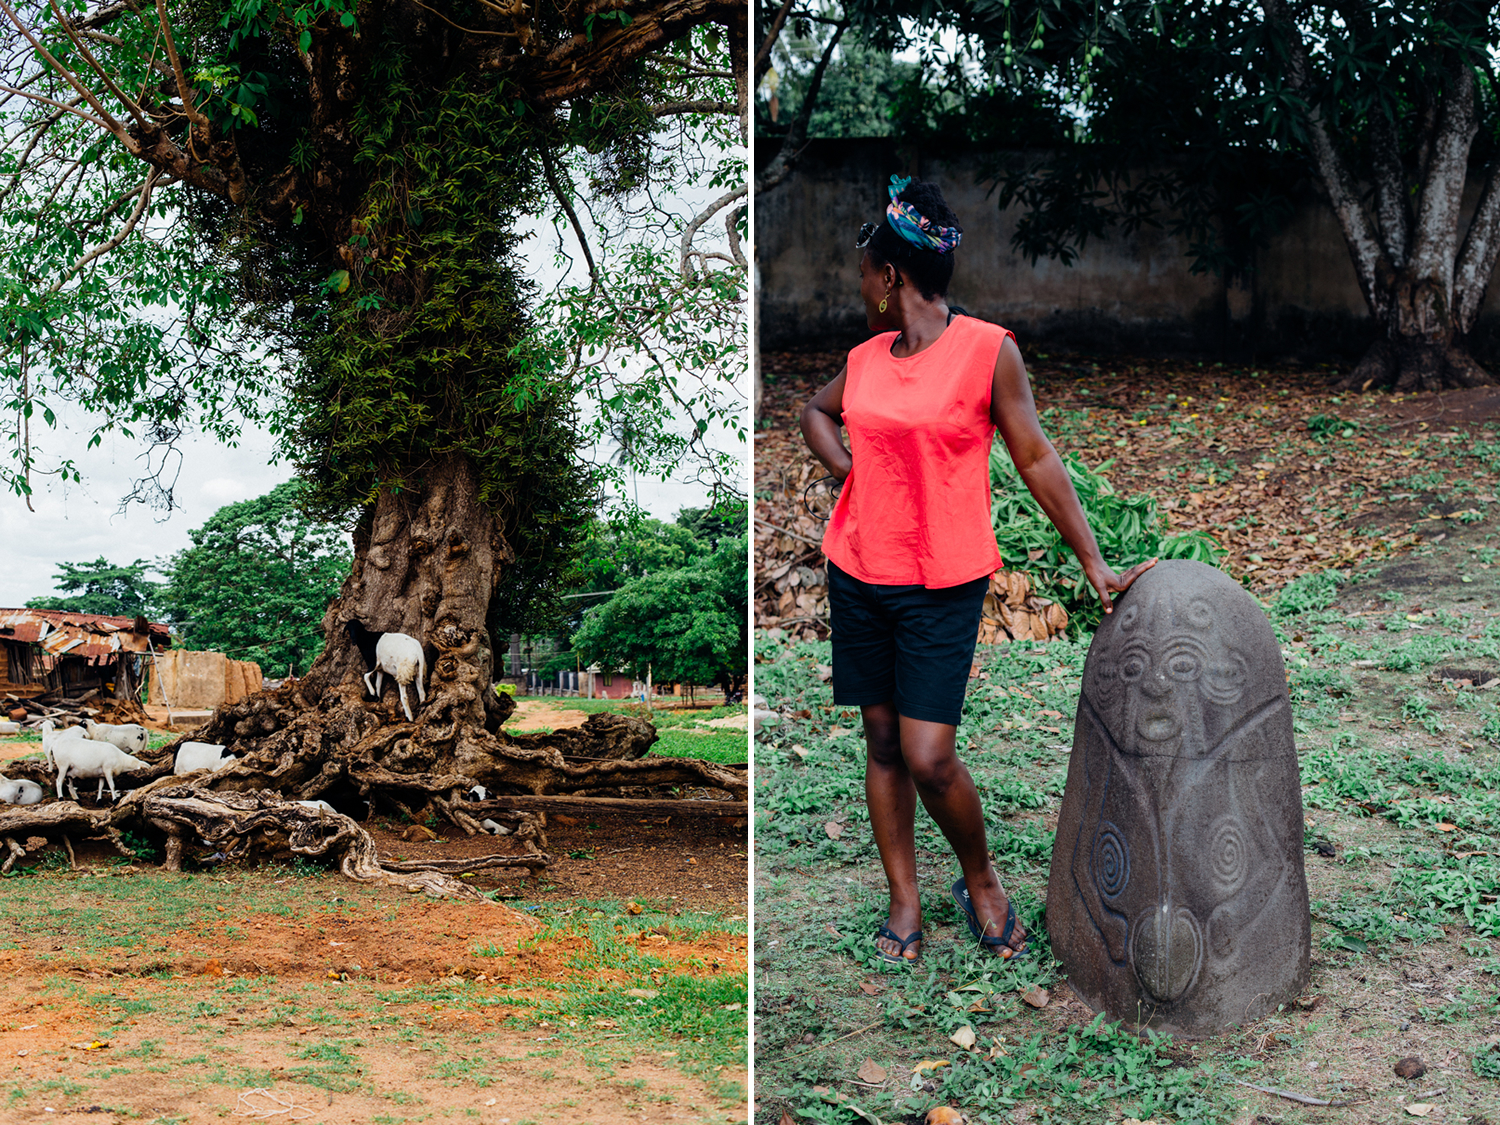 Allegedly the Oldest Tree in West Africa, Alok-Ikom